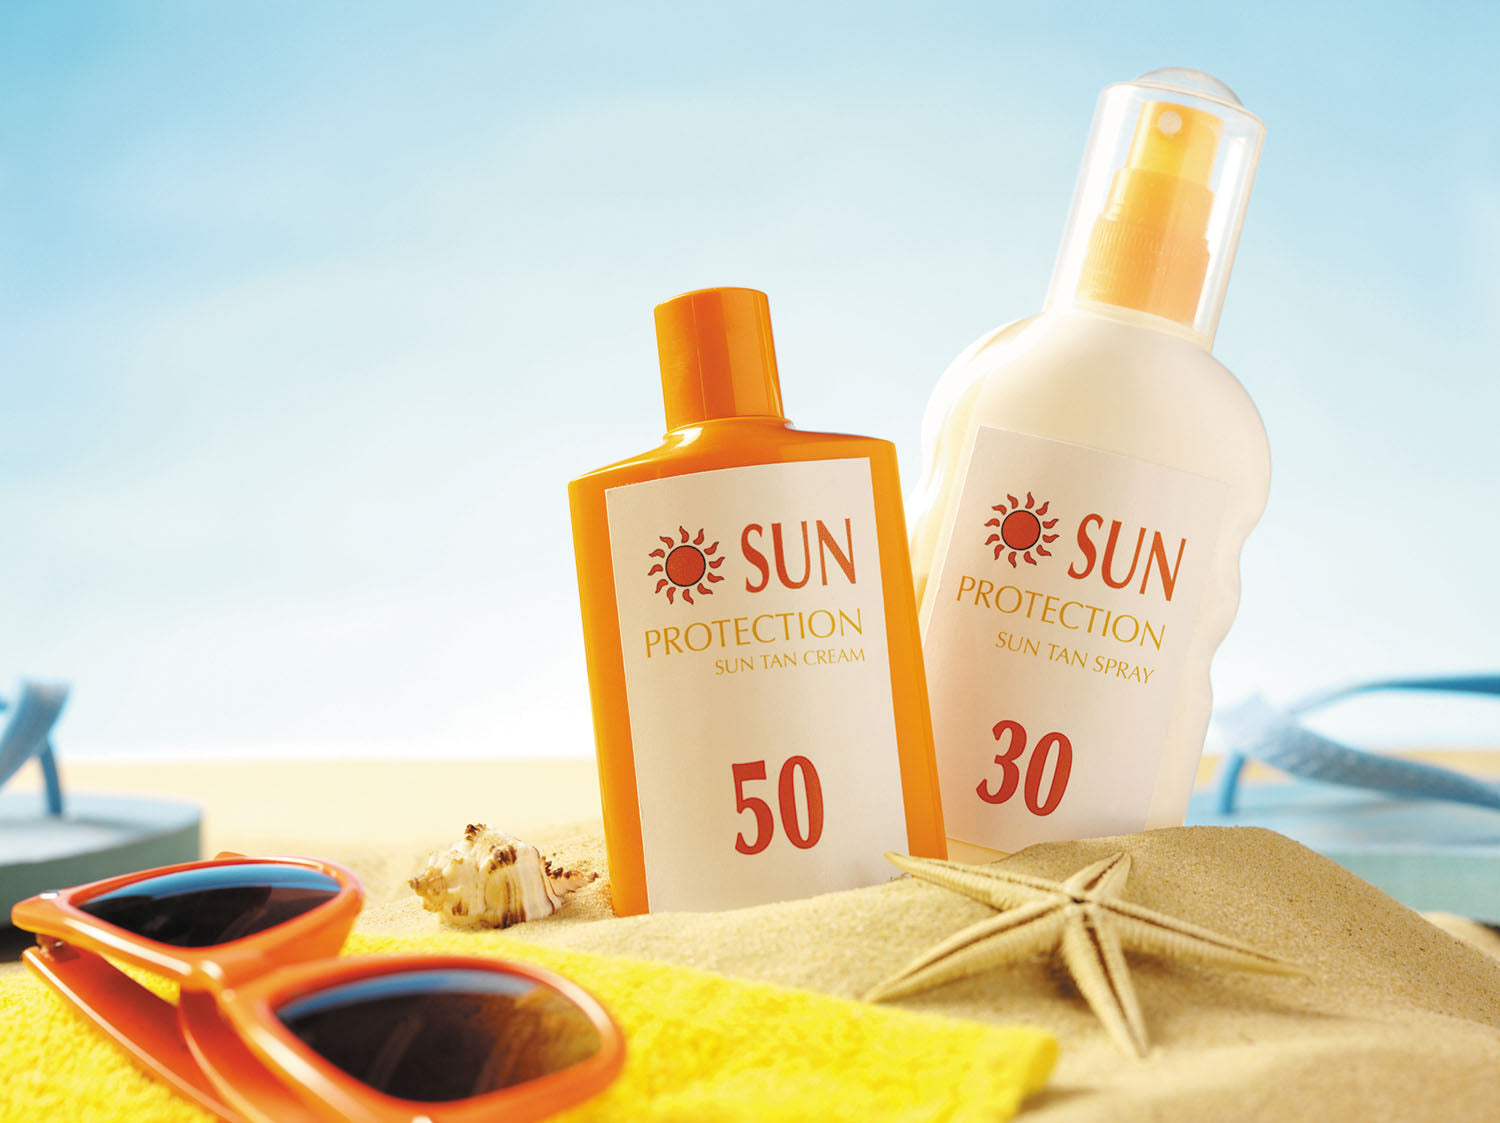 Sunscreen vs Sunblock: What should I Use?